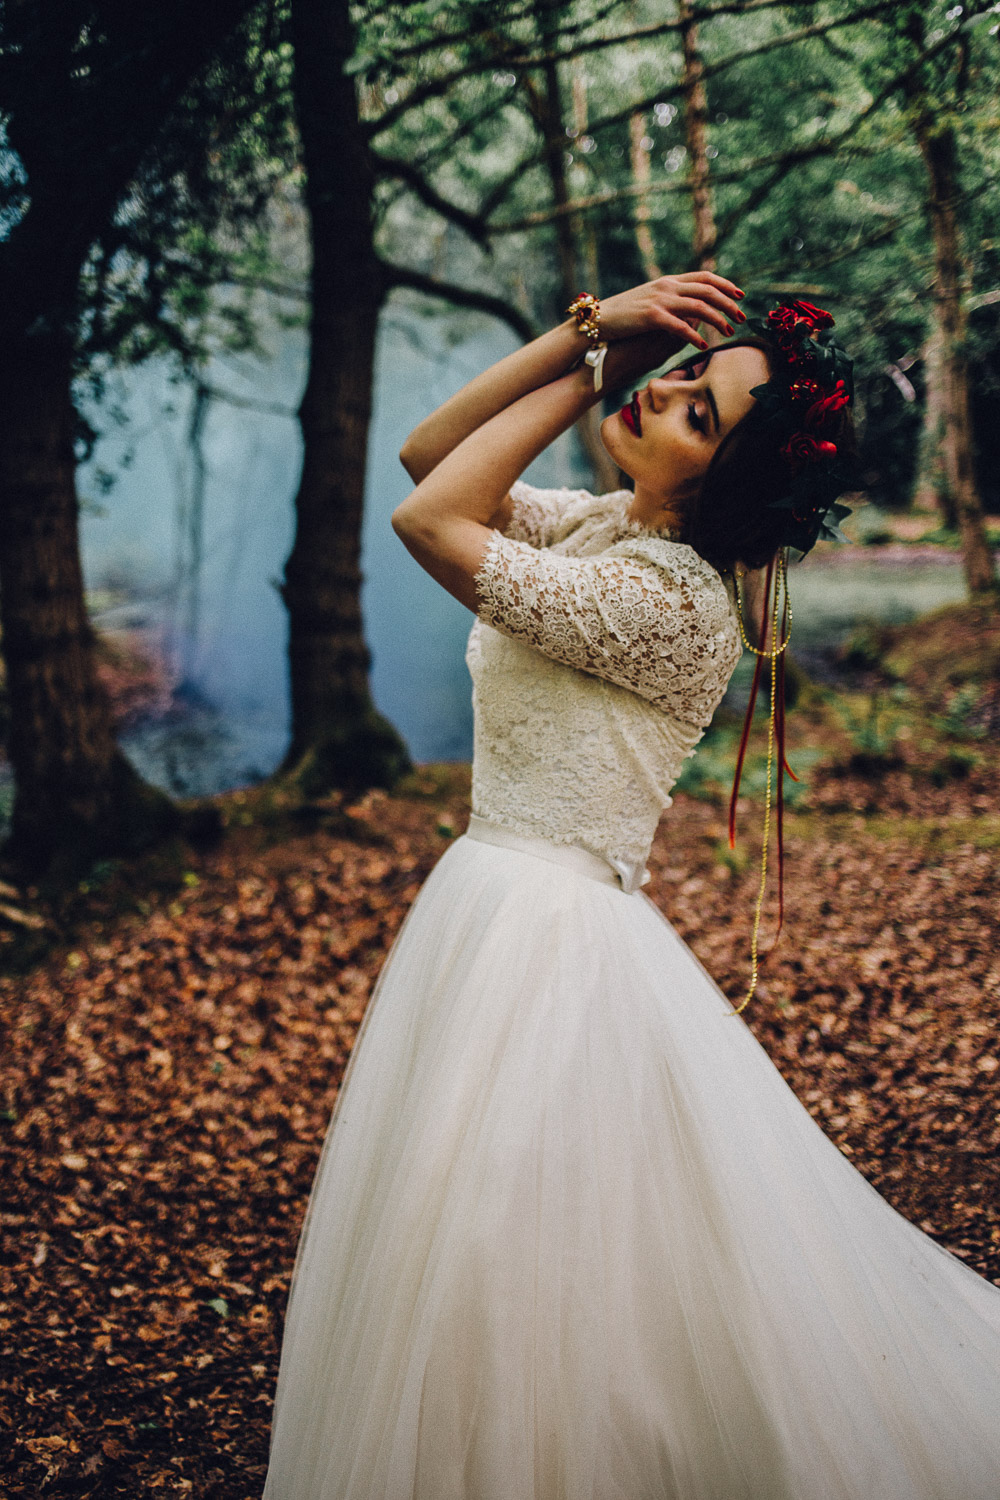 Disney Snow White Rustic Woodland Bridal Ideas smokebombs - Alternative Essex Wedding Photographer